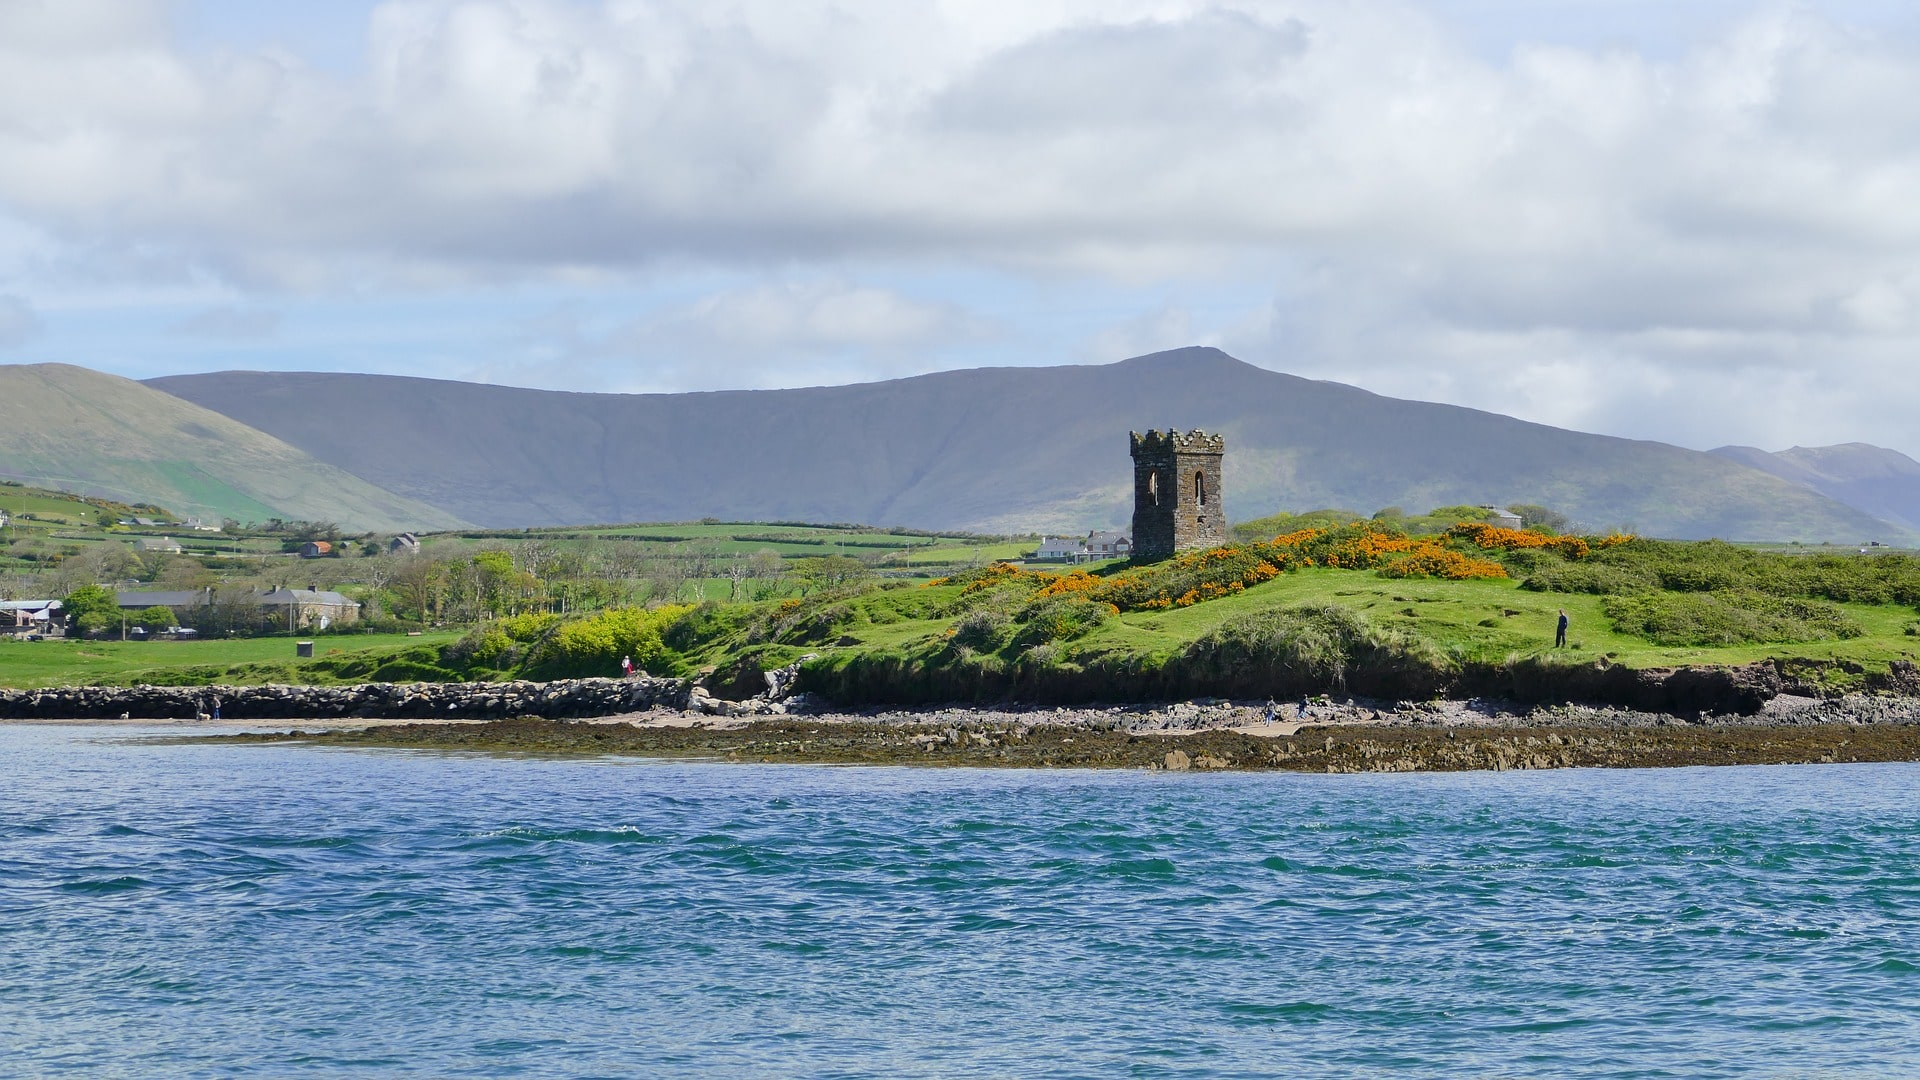 The Dingle Peninsula is one of the most beautiful places to visit in Ireland